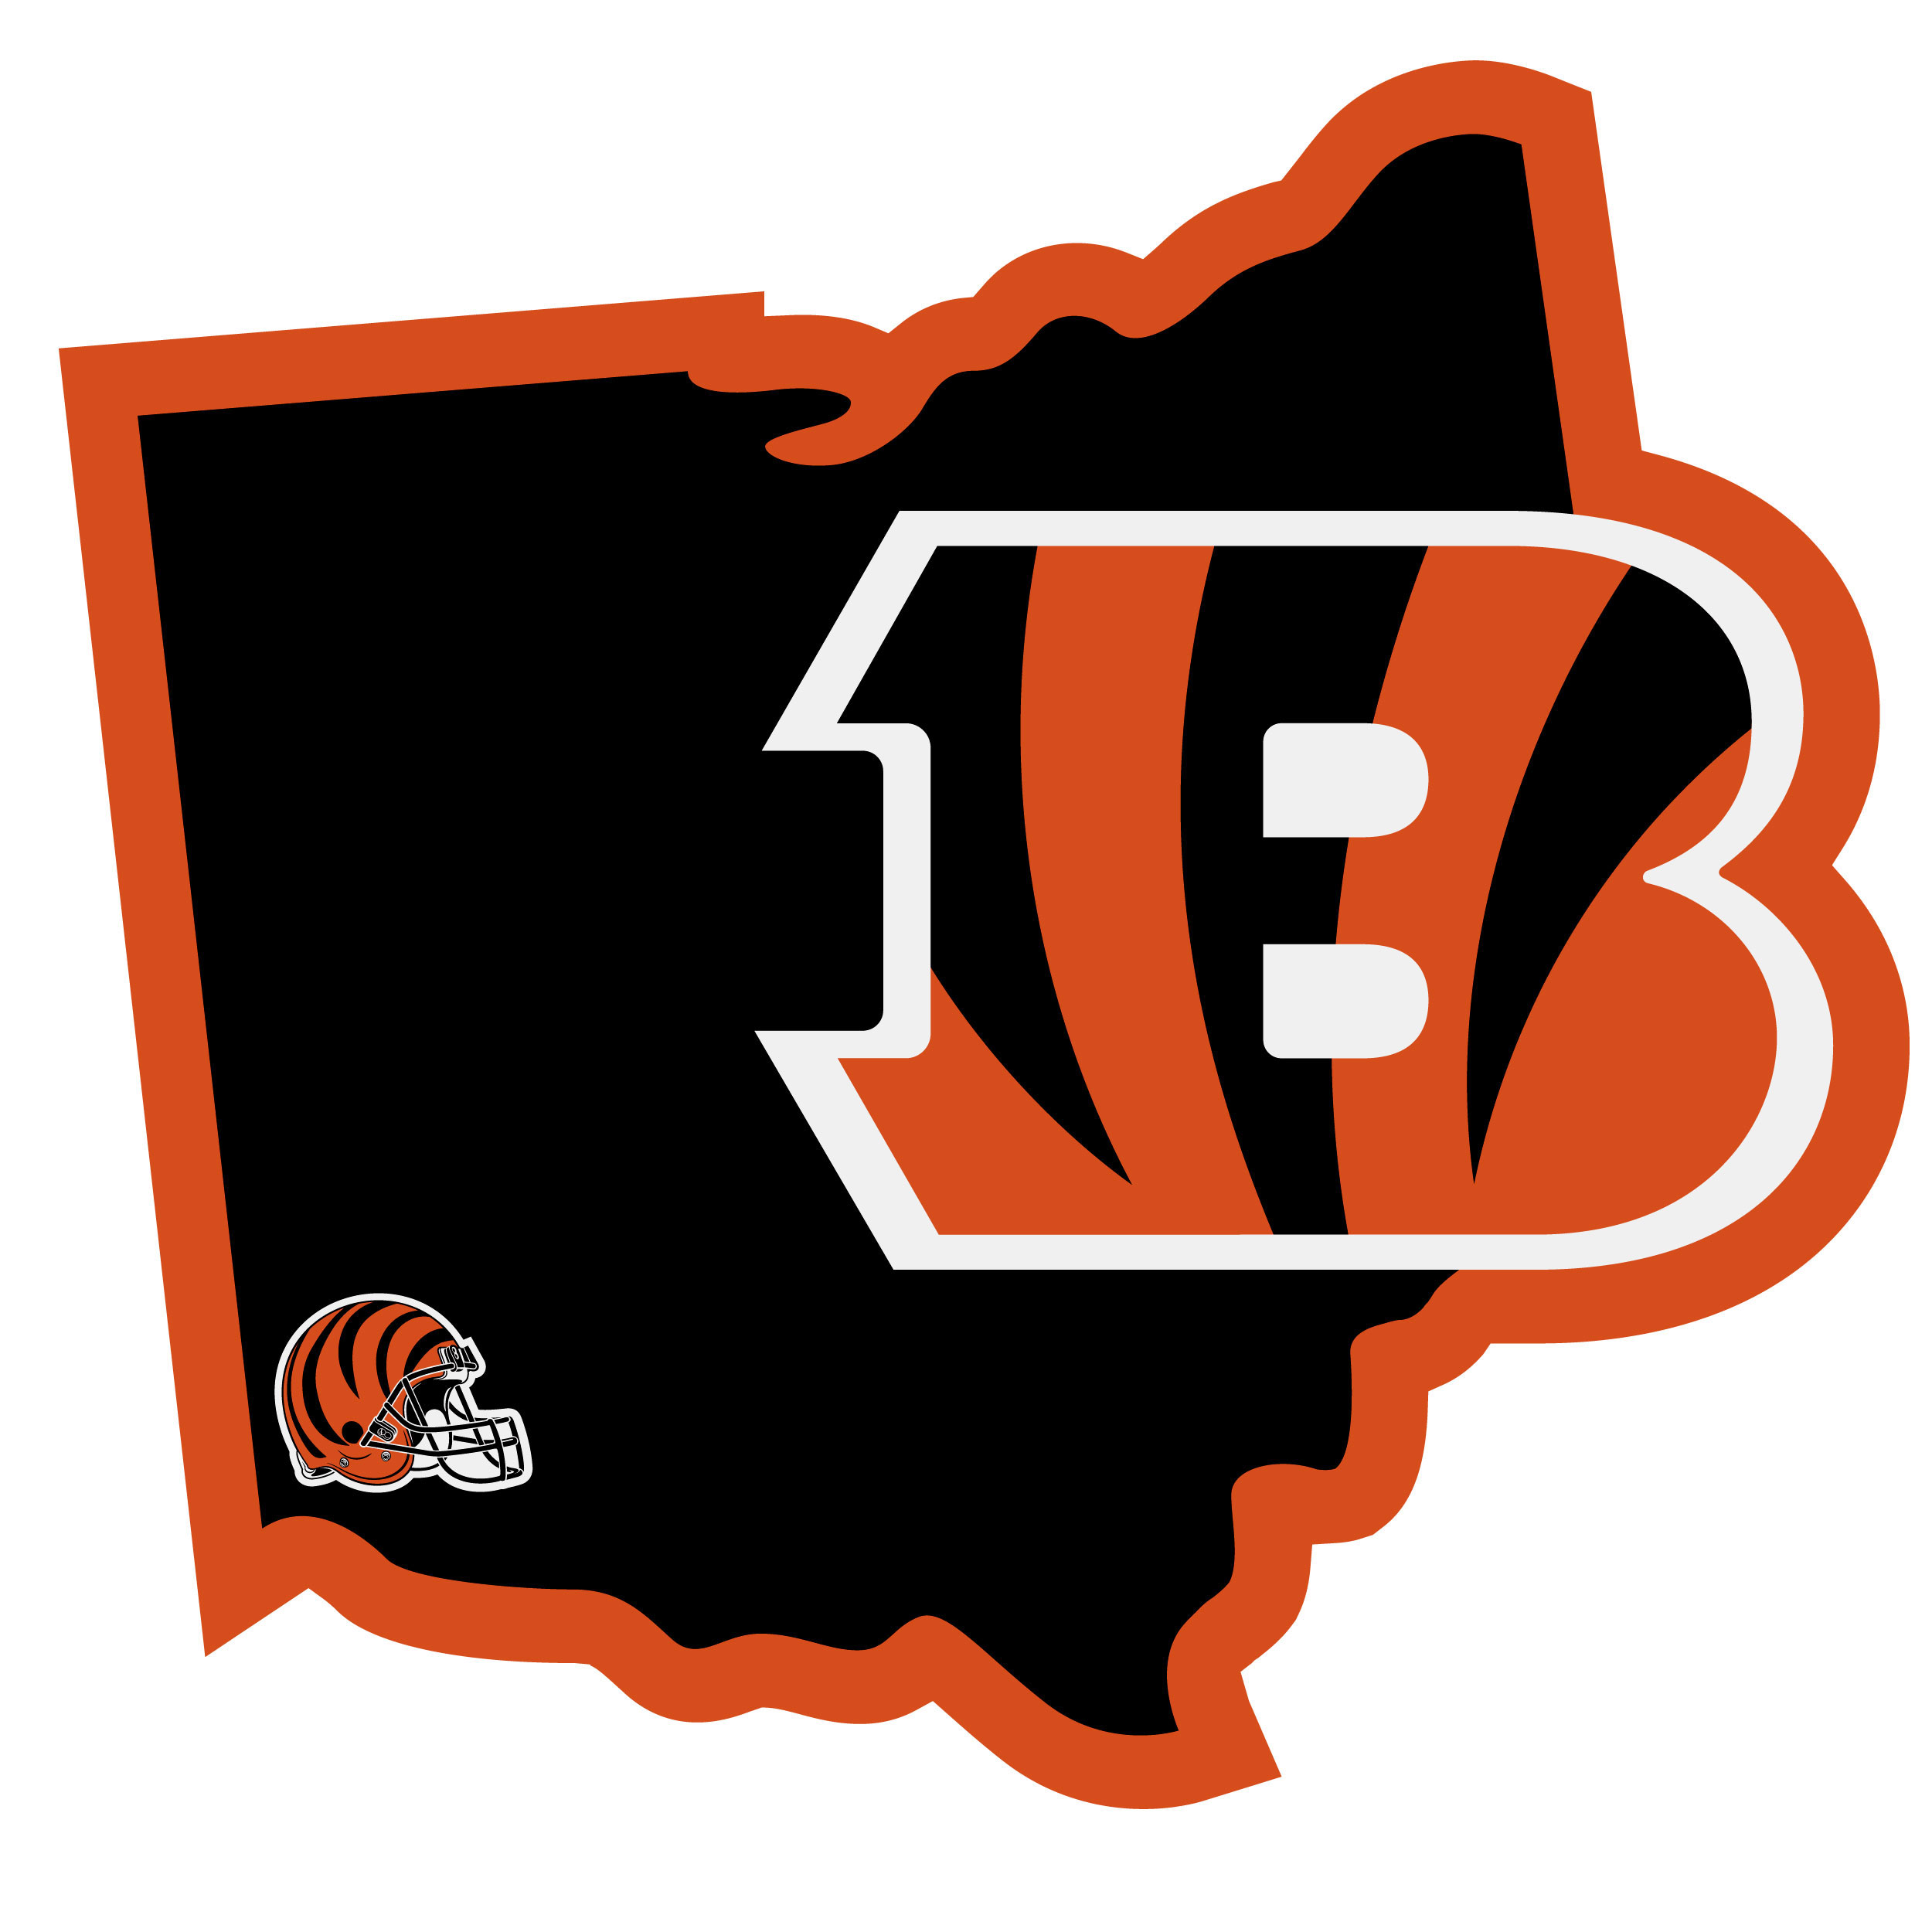 Cincinnati Bengals Home State Decal - It's a home state decal with a sporty twist! This Cincinnati Bengals decal feature the team logo over a silhouette of the state in team colors and a heart marking the home of the team. The decal is approximately 5 inches on repositionable vinyl.